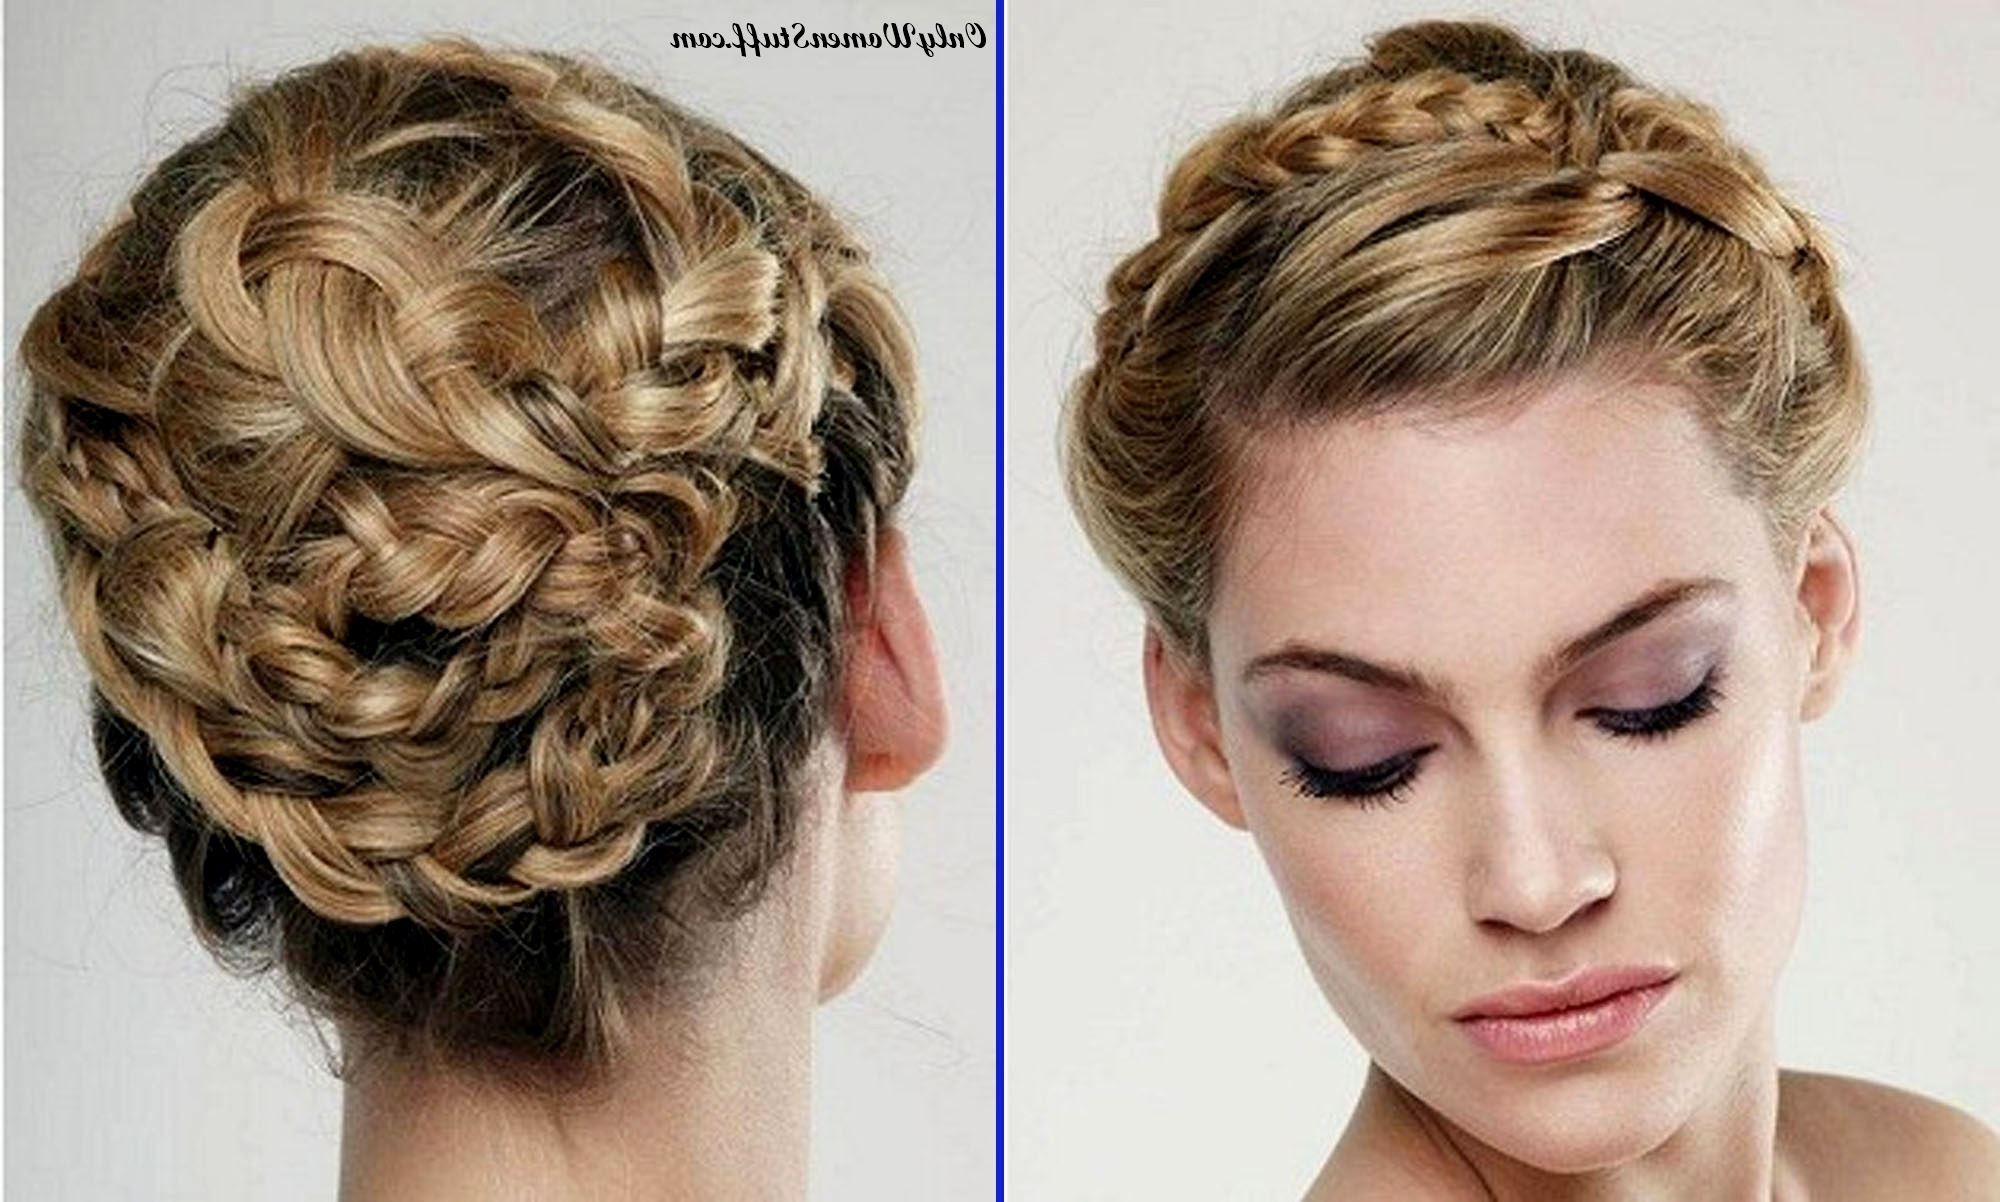 50+ Easy Prom Hairstyles & Updos Ideas (stepstep) Regarding Simple Hair Updo Hairstyles (View 8 of 15)